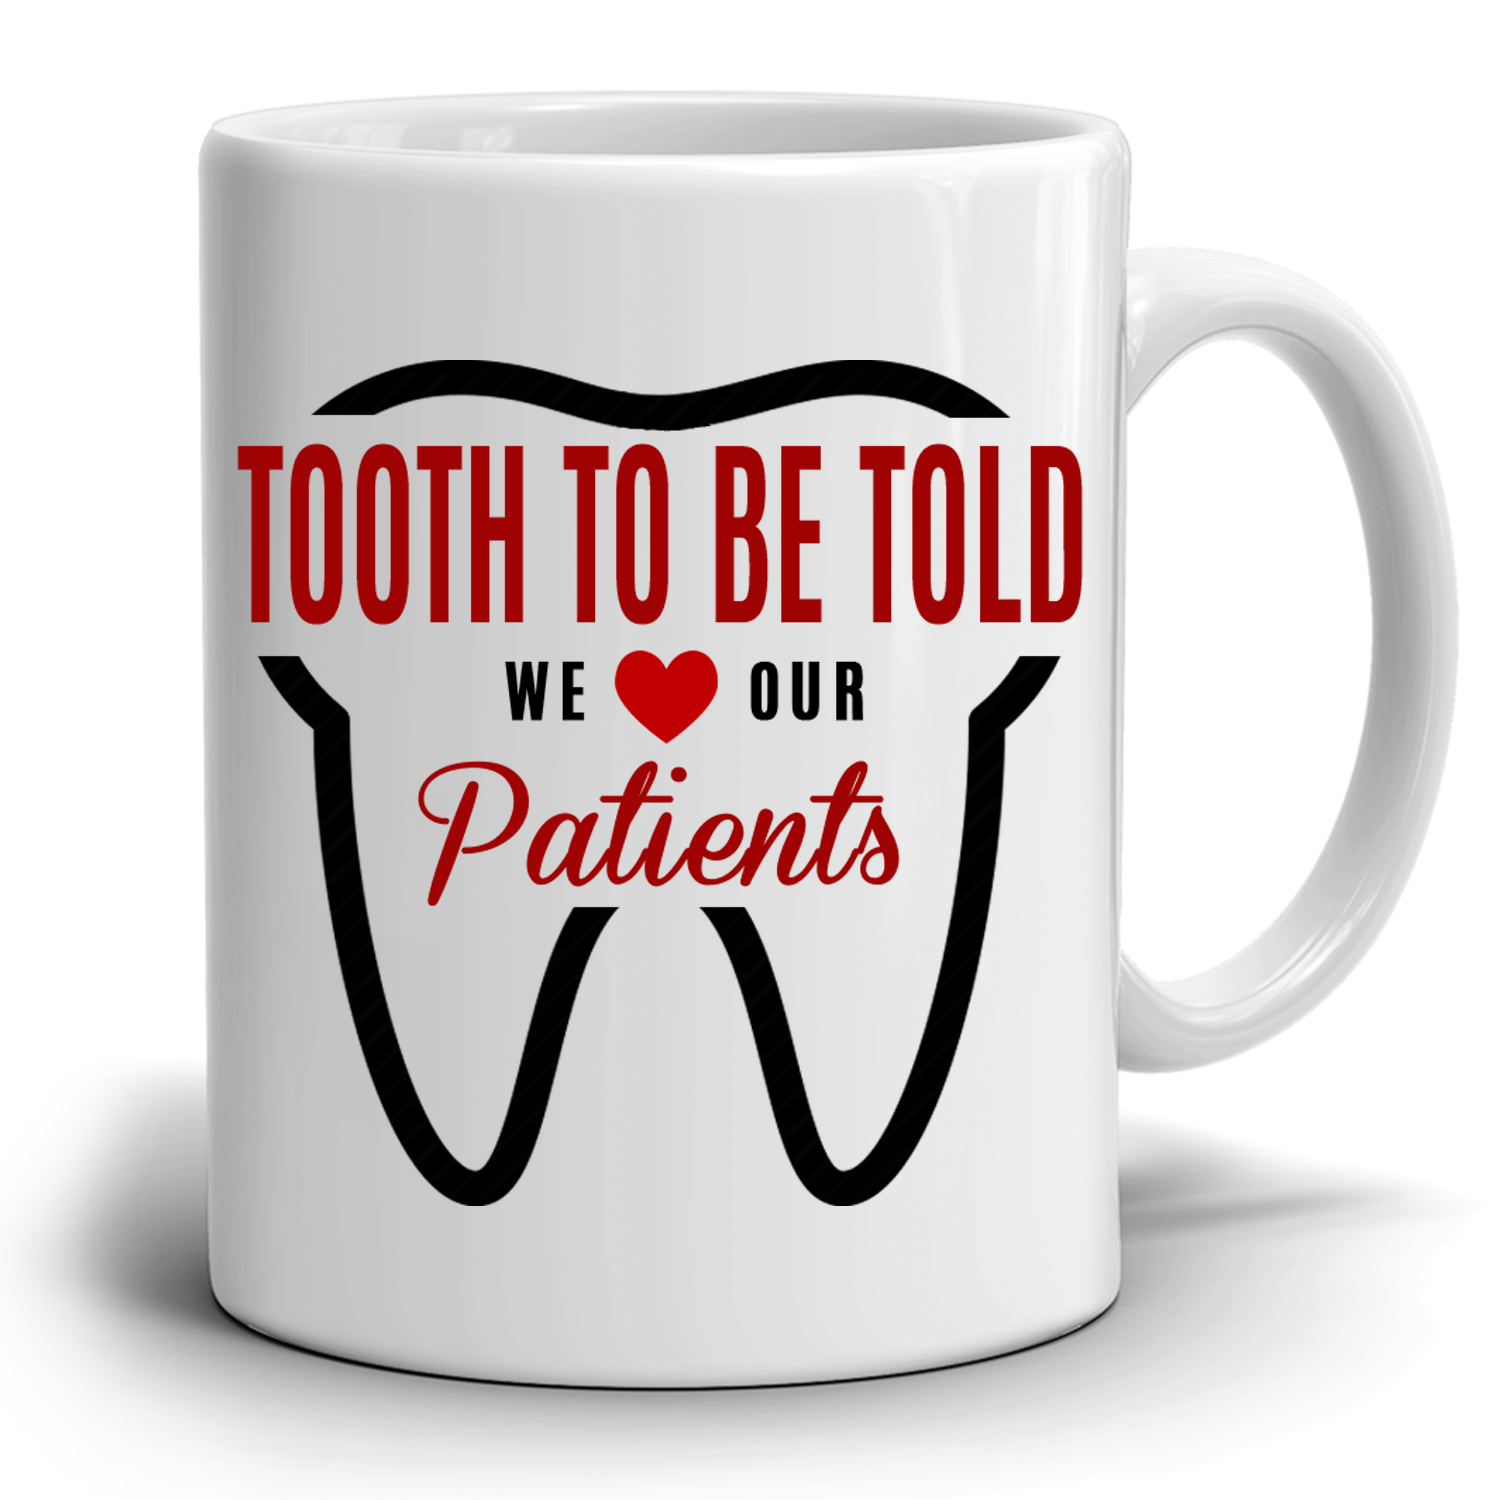 Fun Dentist Office Coffee Mug A Cool Unique Gift For Anyone In The